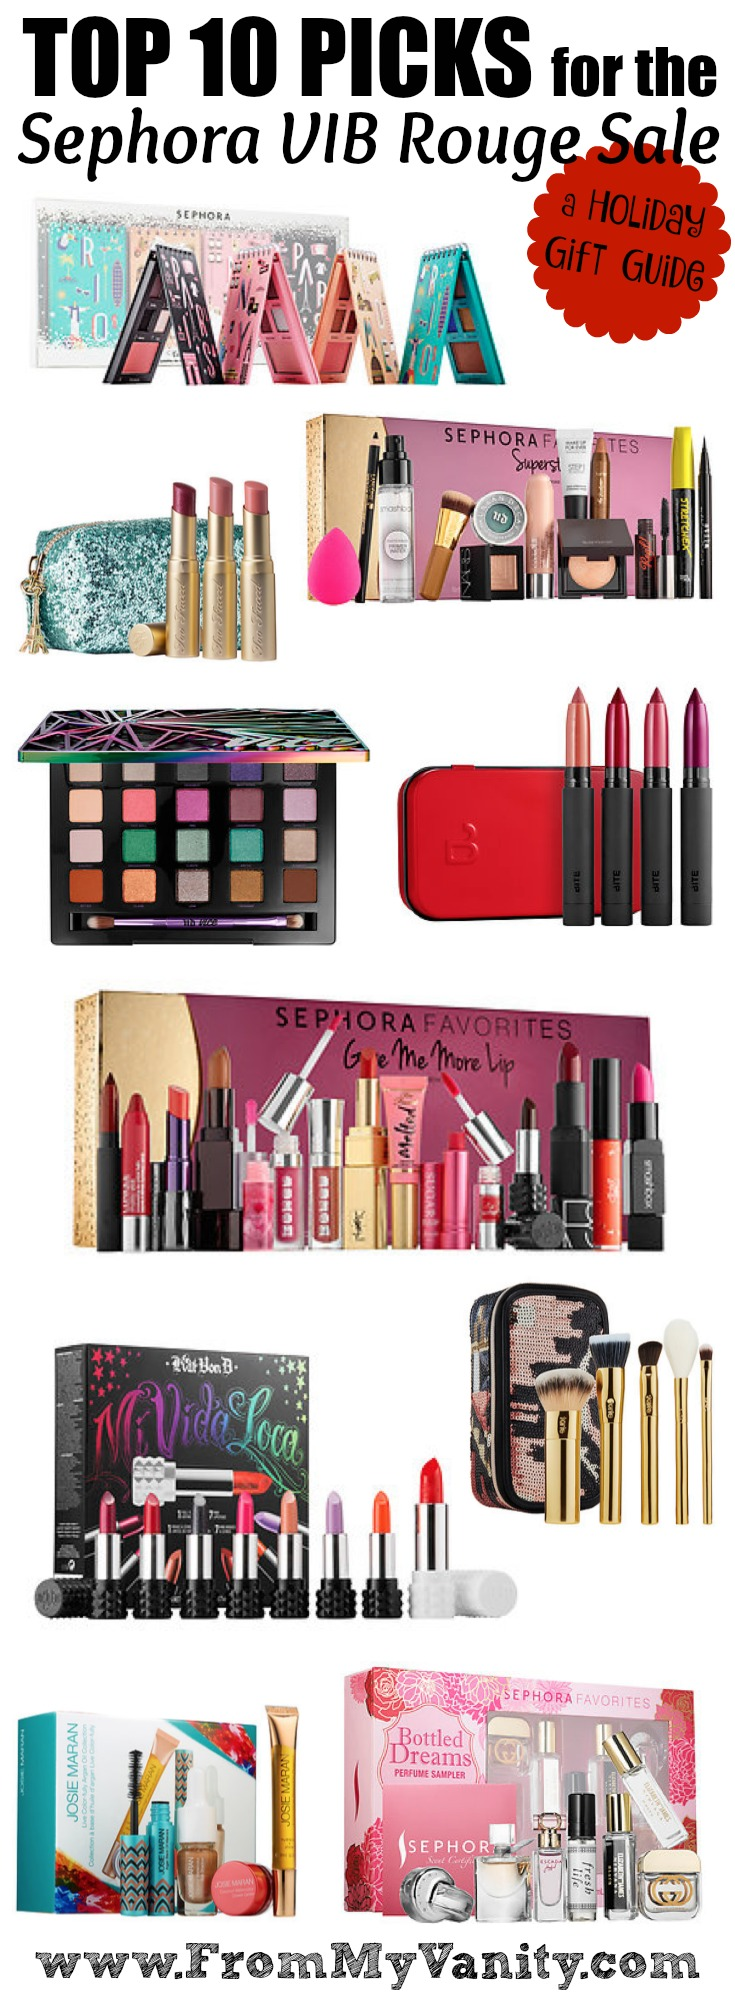 Top 10 Picks for Sephora's VIB Rouge Sale // A Holiday Gift Guide // #beauty #sephorahaul #Sephora FromMyVanity.com